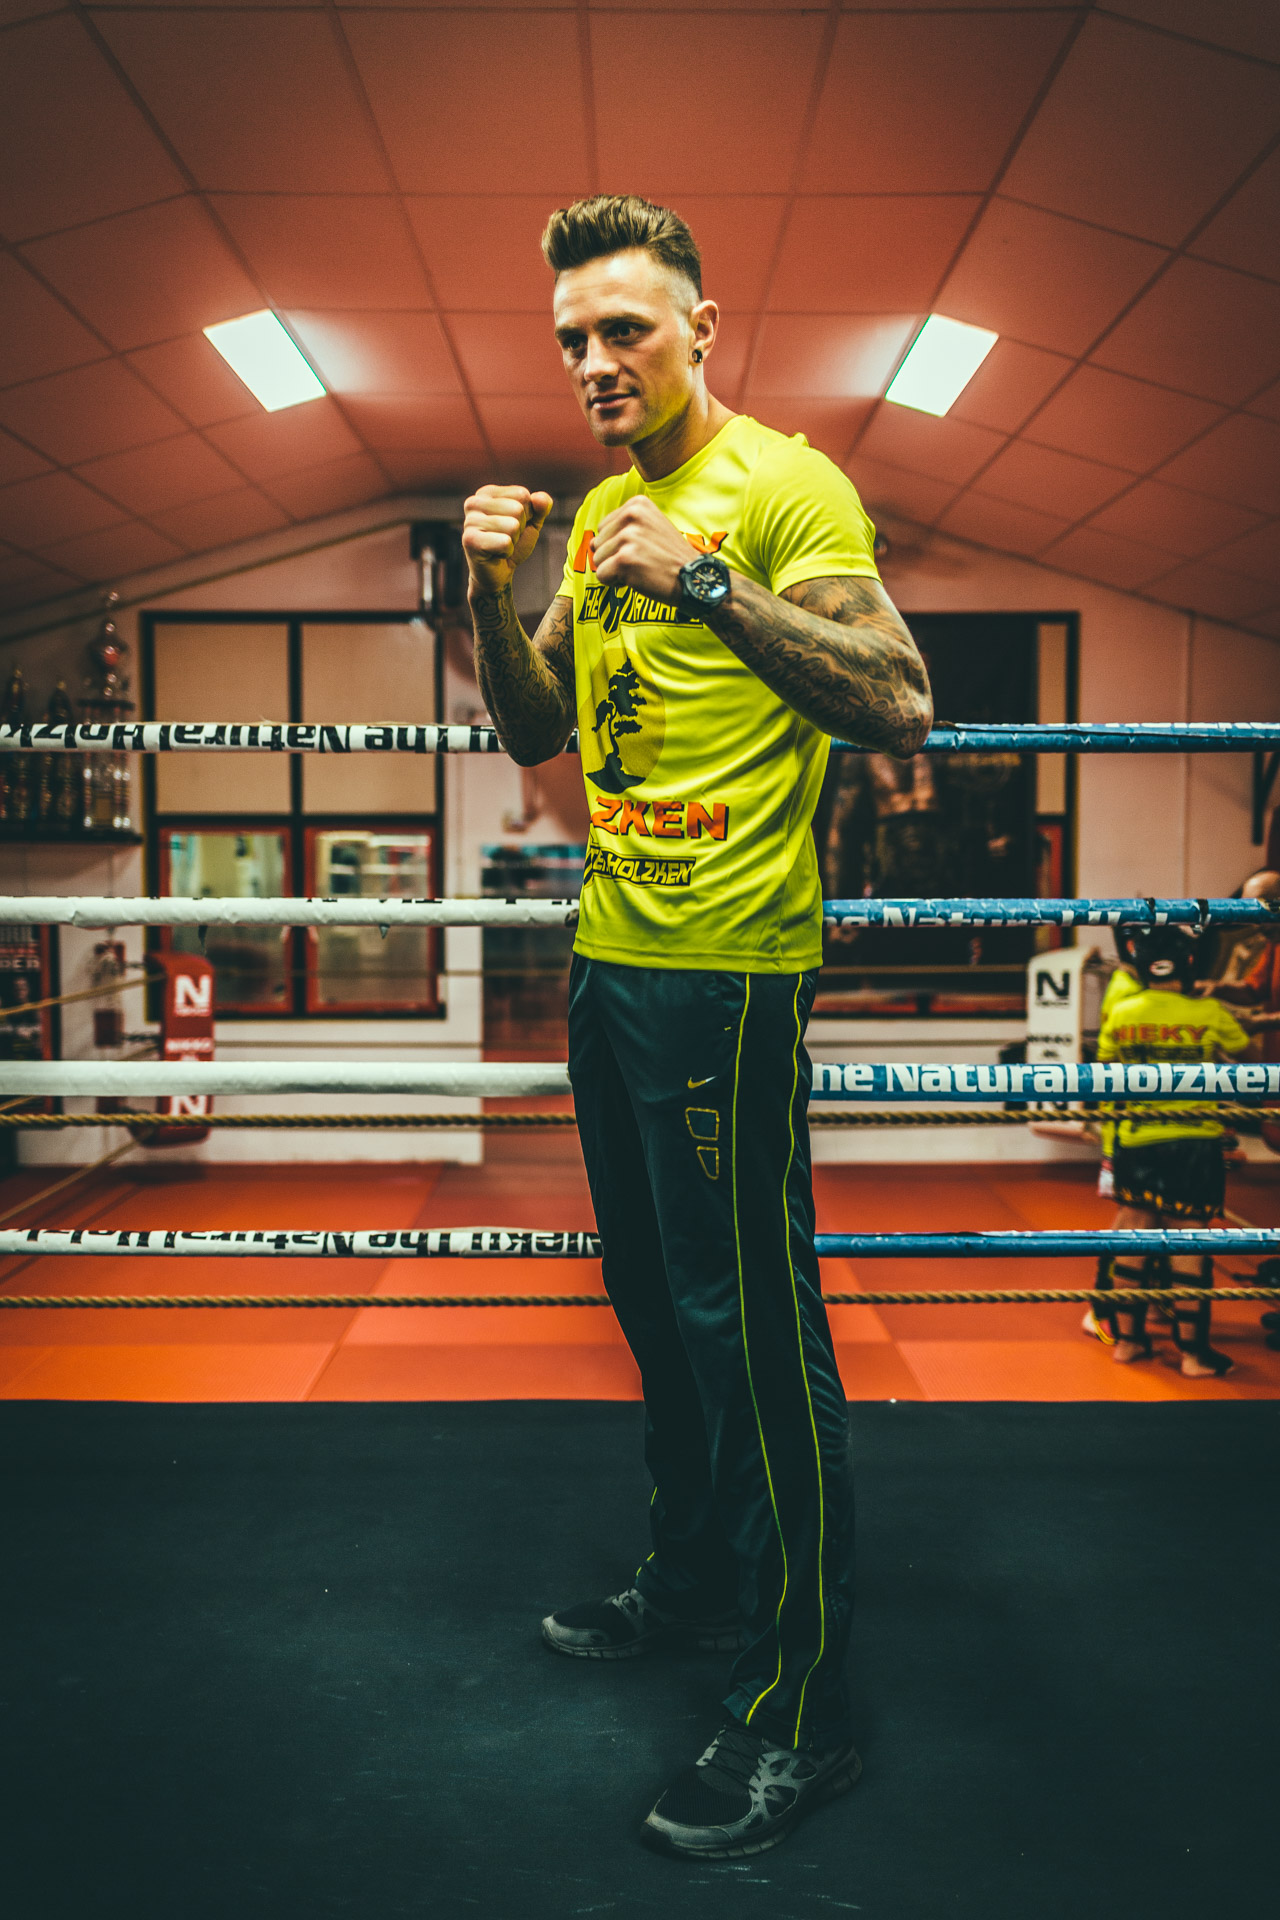 Image Result For Nieky Holzken